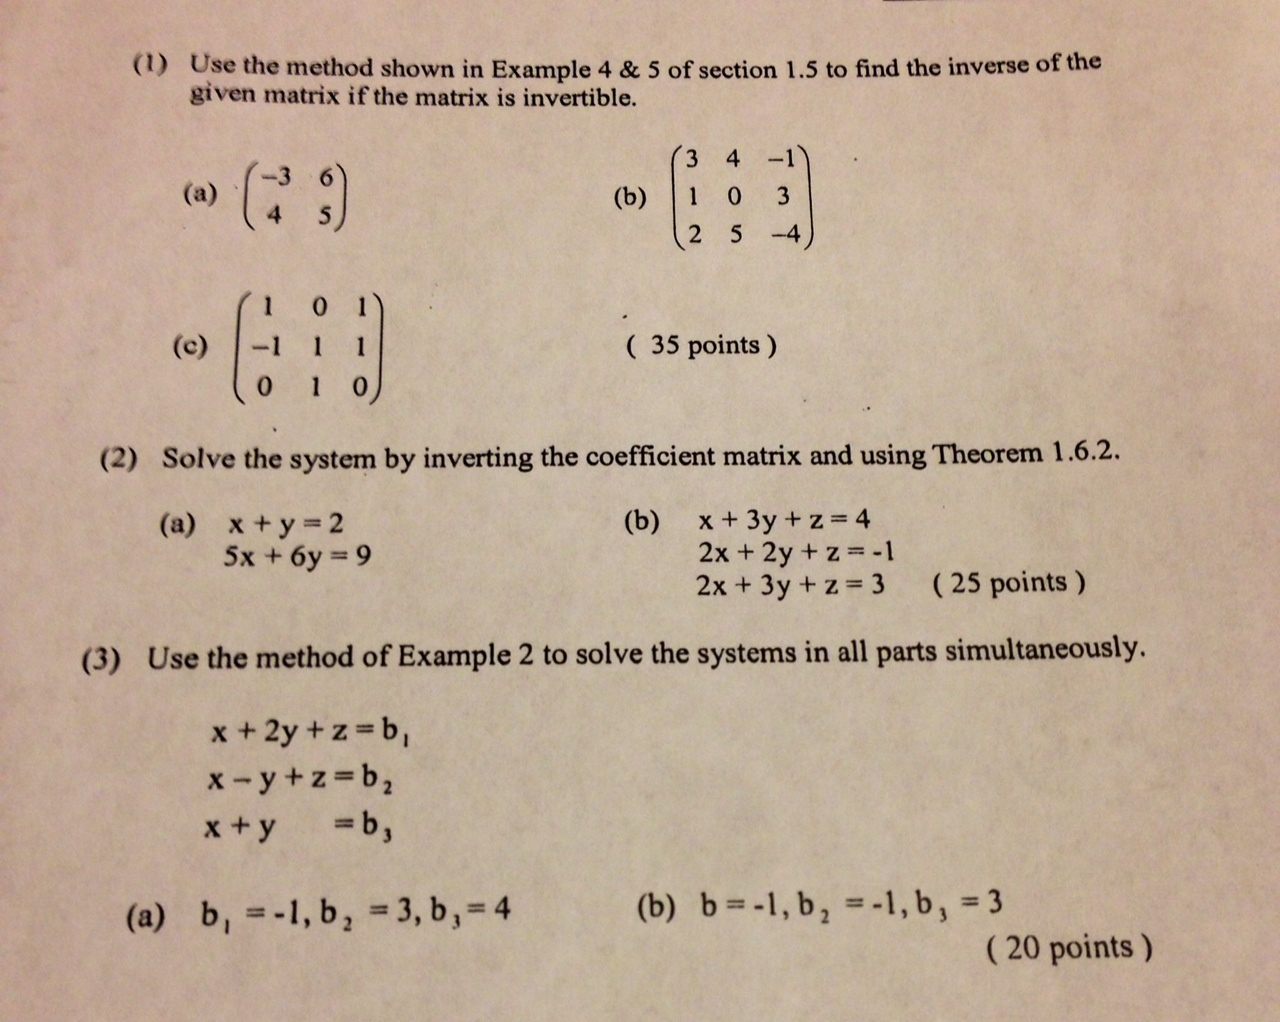 I need help doing my math homework